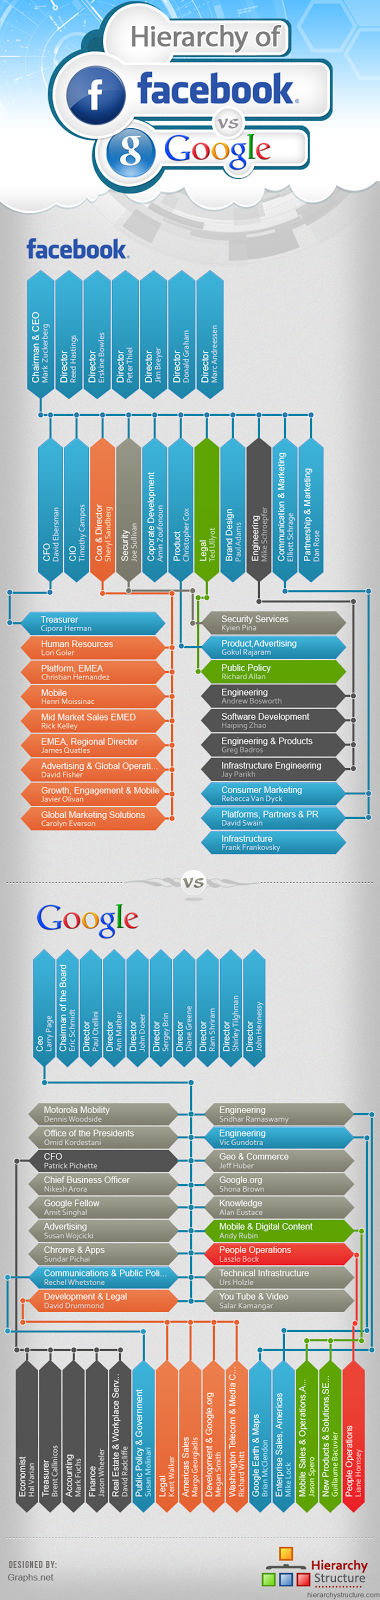 Facebook and Google Hierarchy